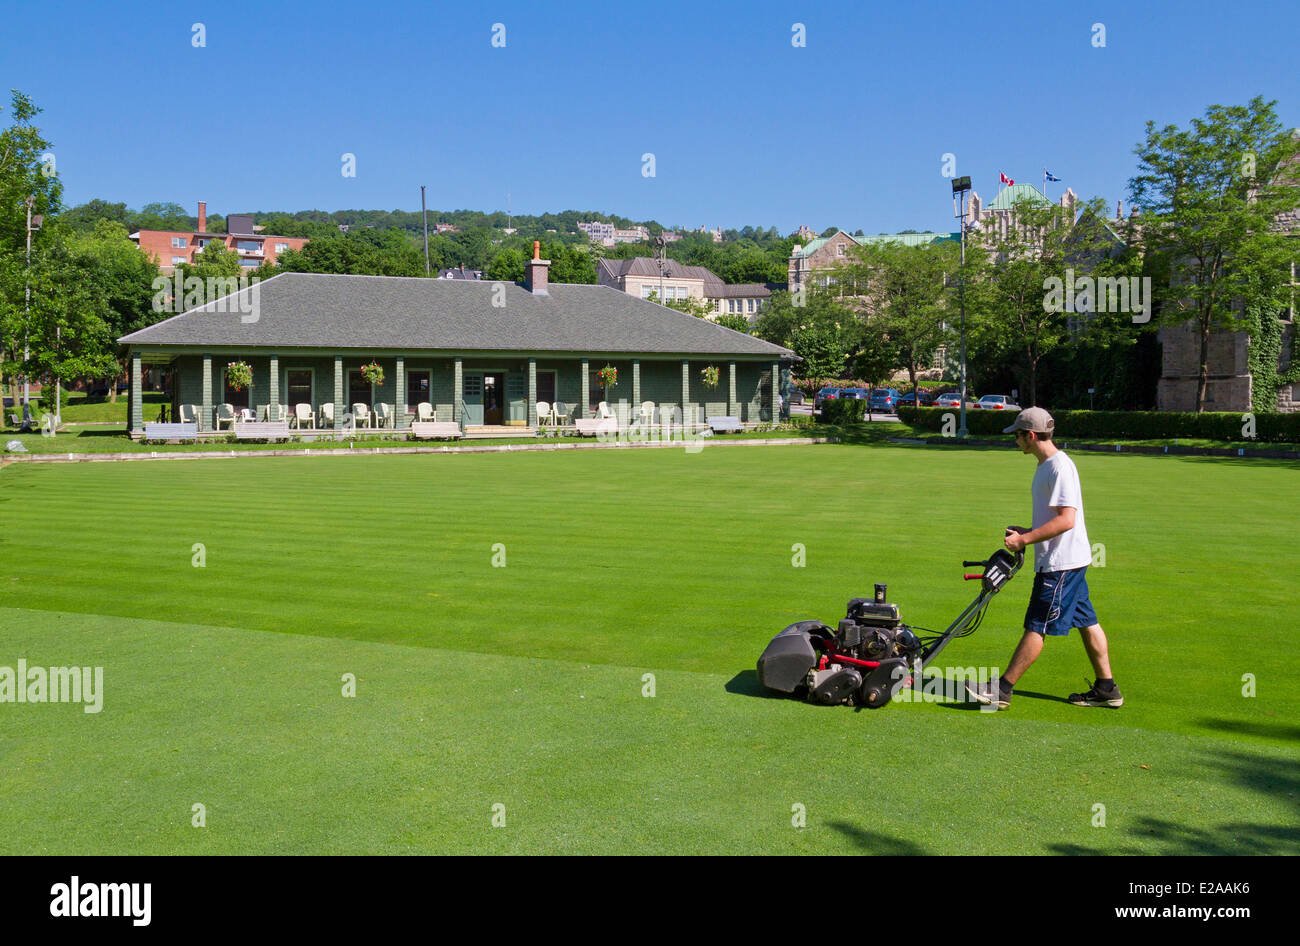 Canada, Quebec Province, Montreal, Westmount, the lawn bowling field, grass cutting - Stock Image